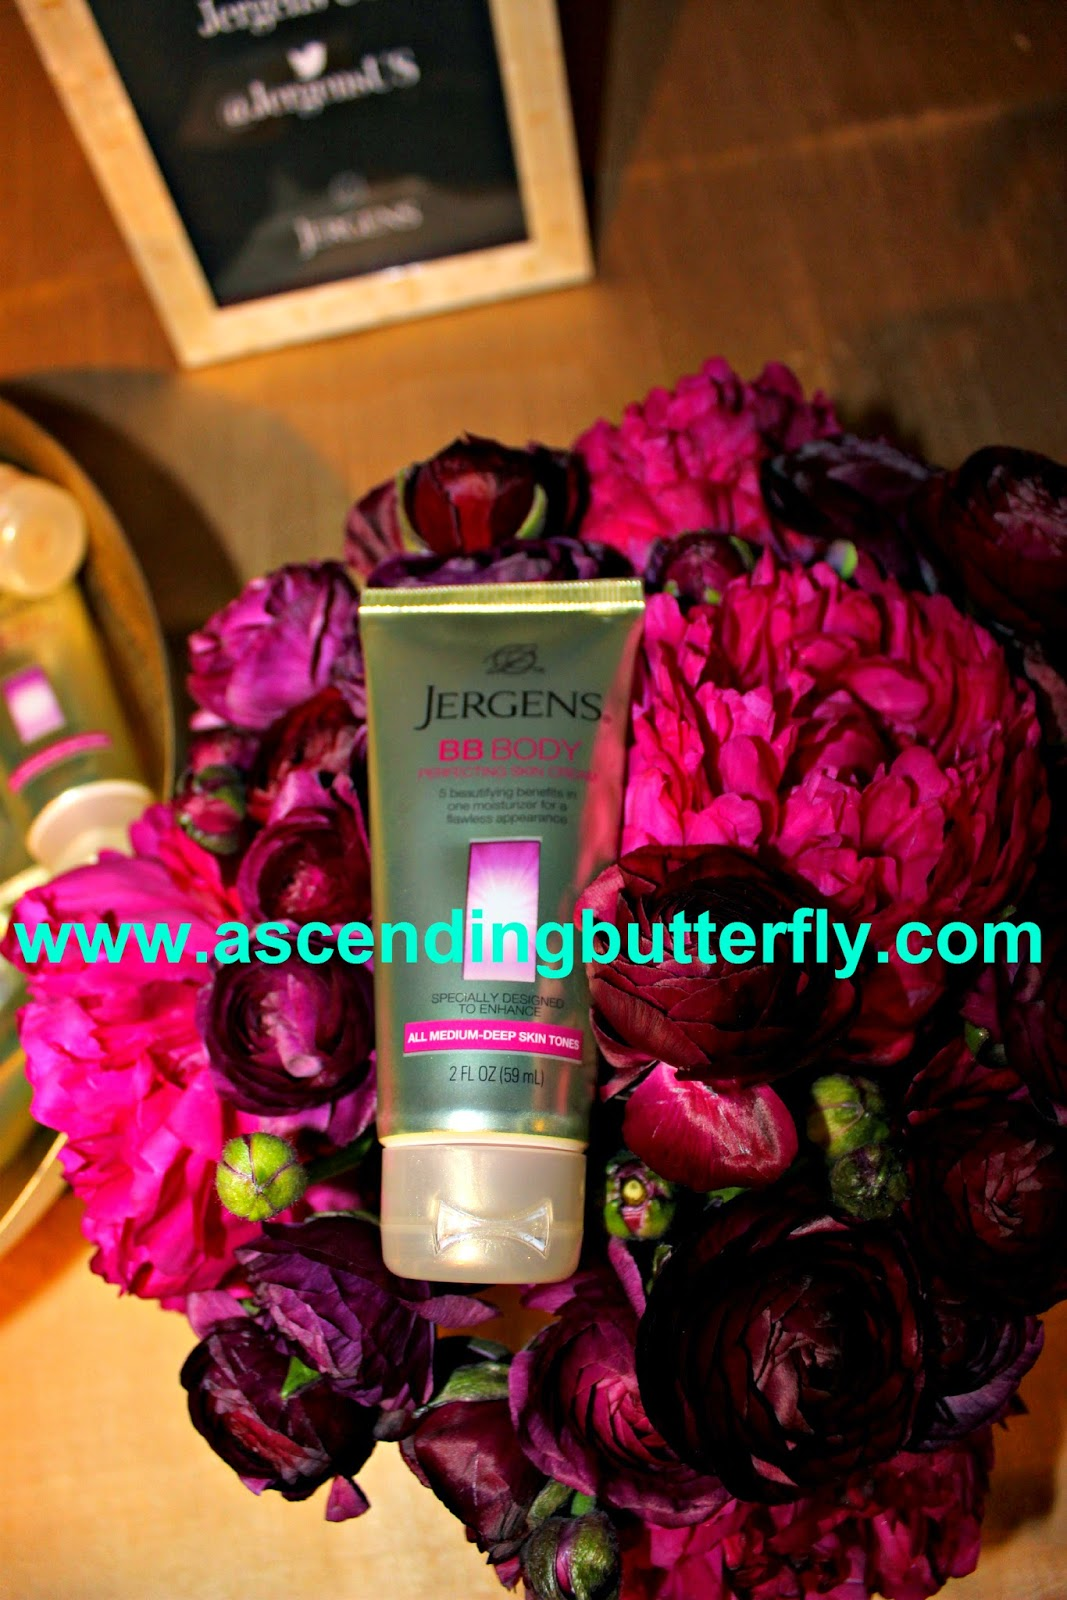 JERGENS® BB Body Cream, #JergensBBBody, #BBGoesBody, #CelebrateInStyle